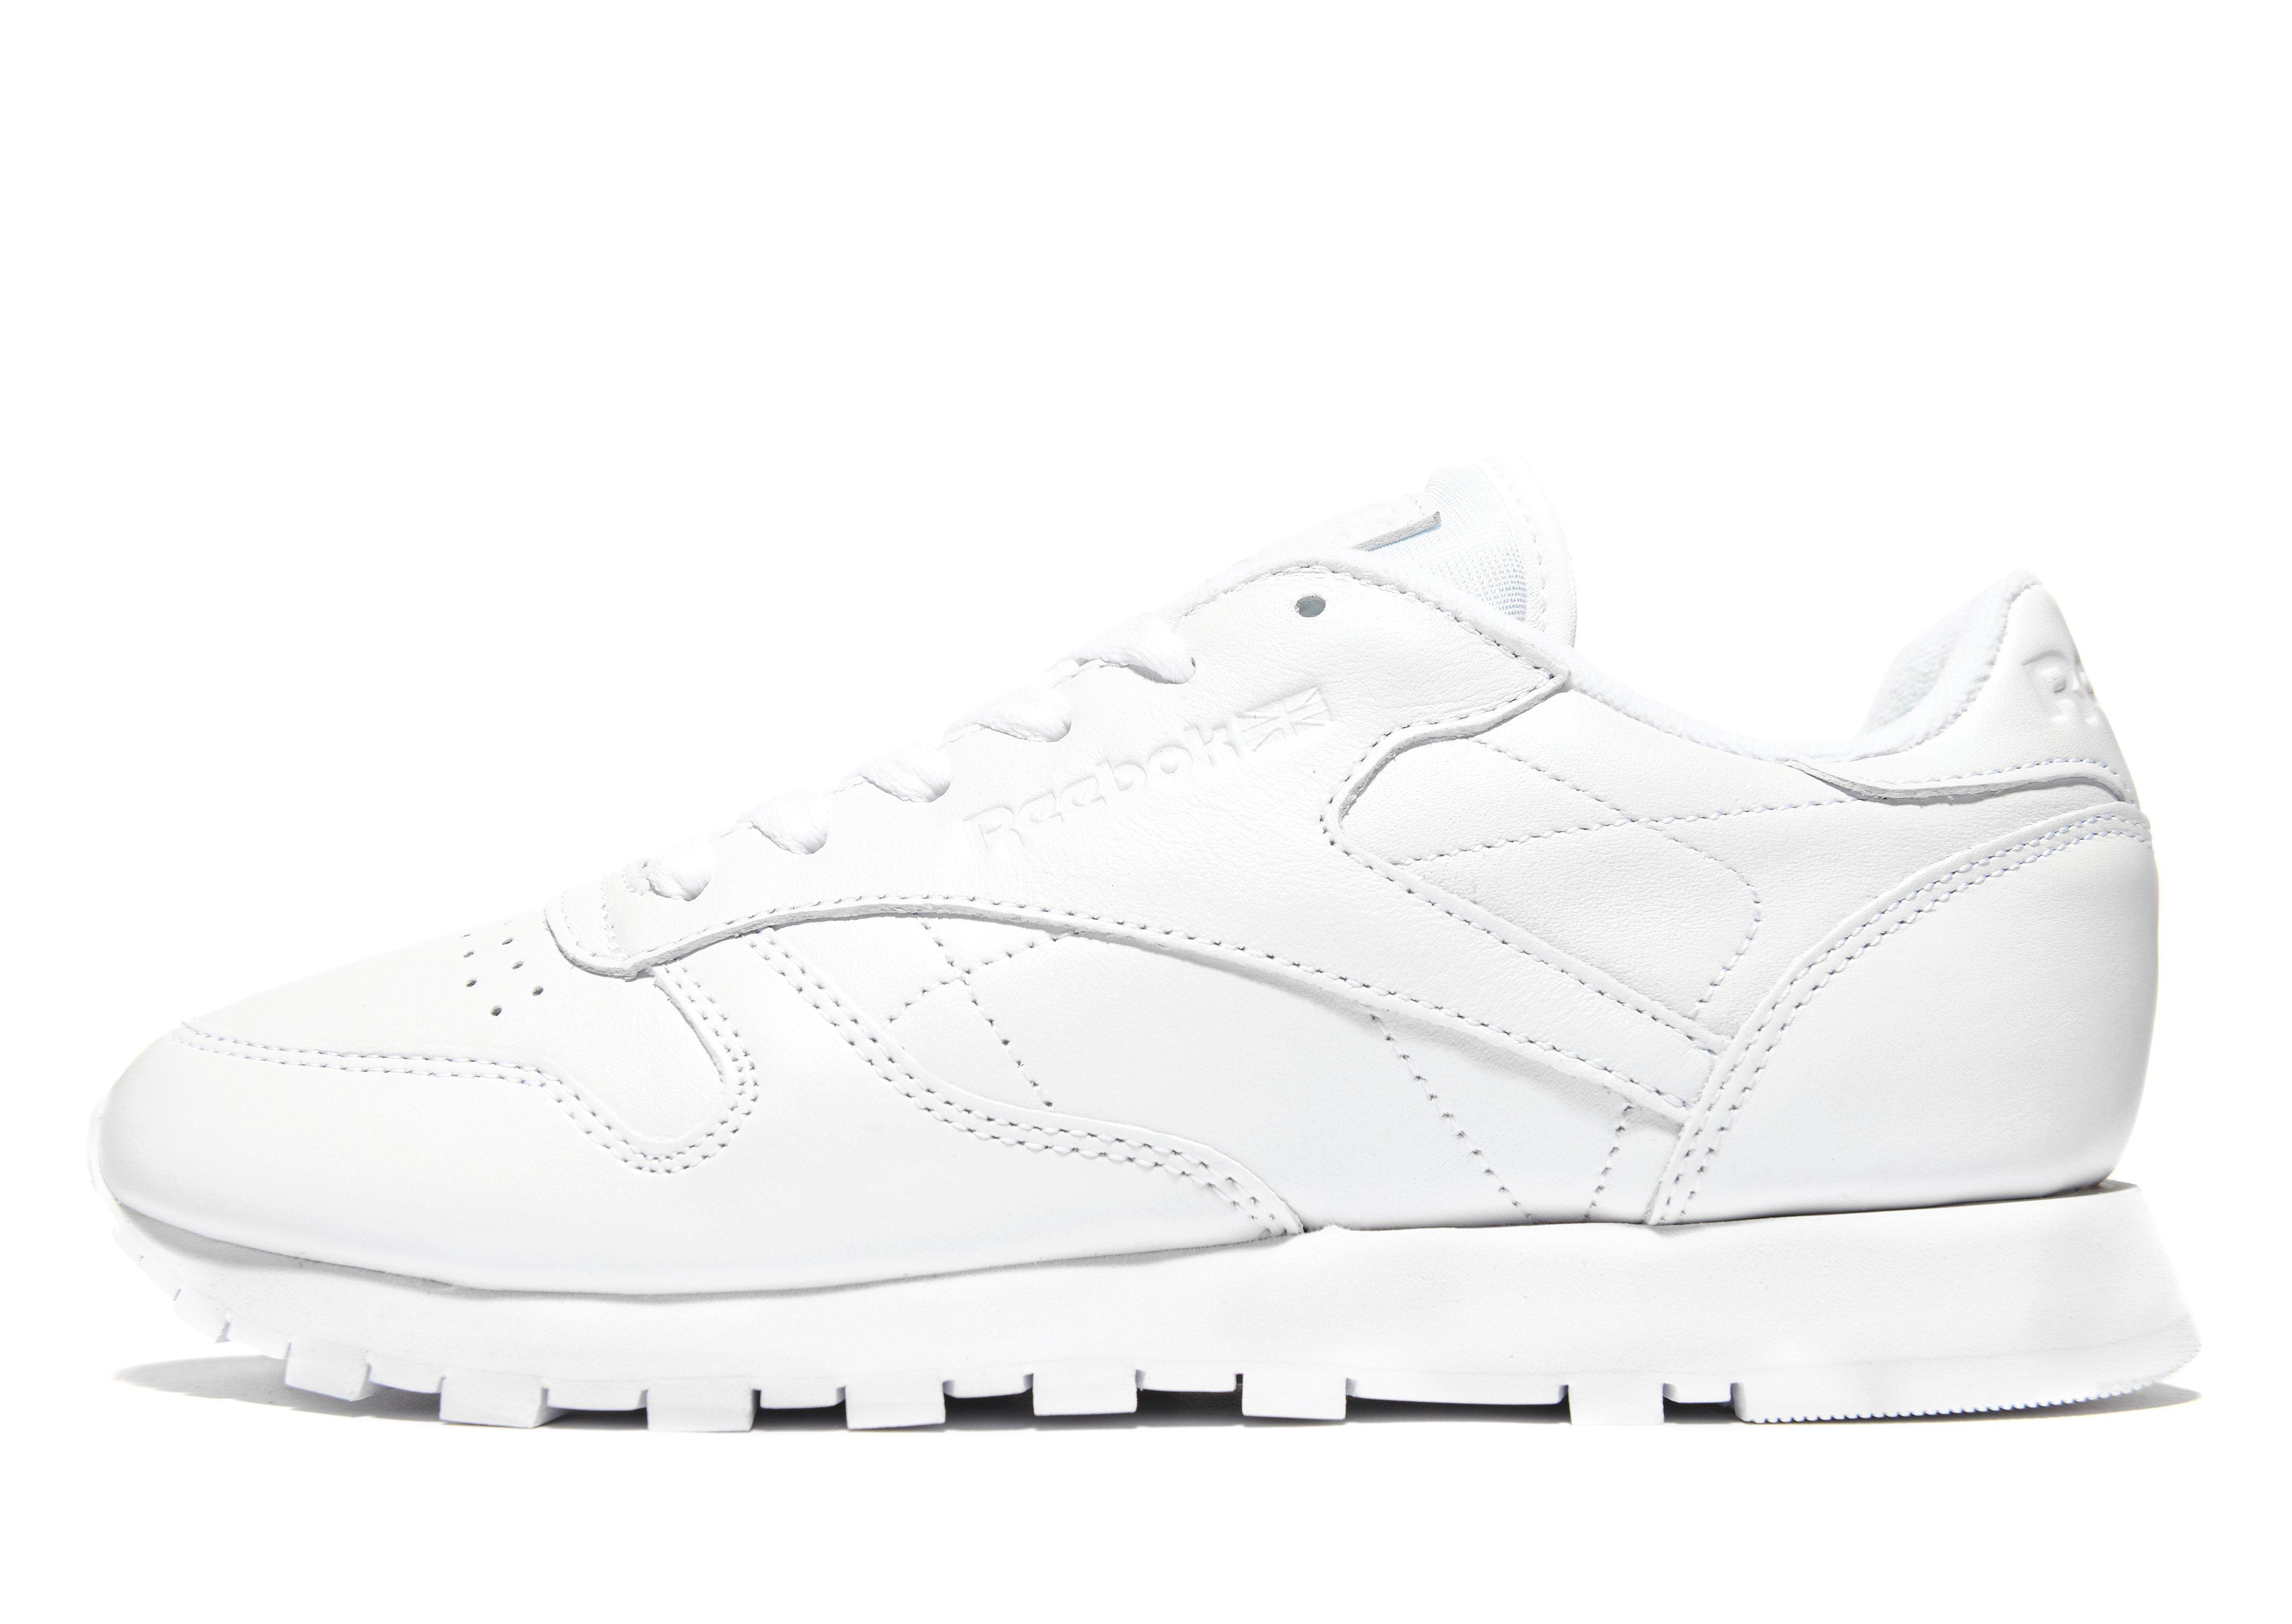 Reebok Classic Leather Pearlised in White for Men - Lyst 625ad138a